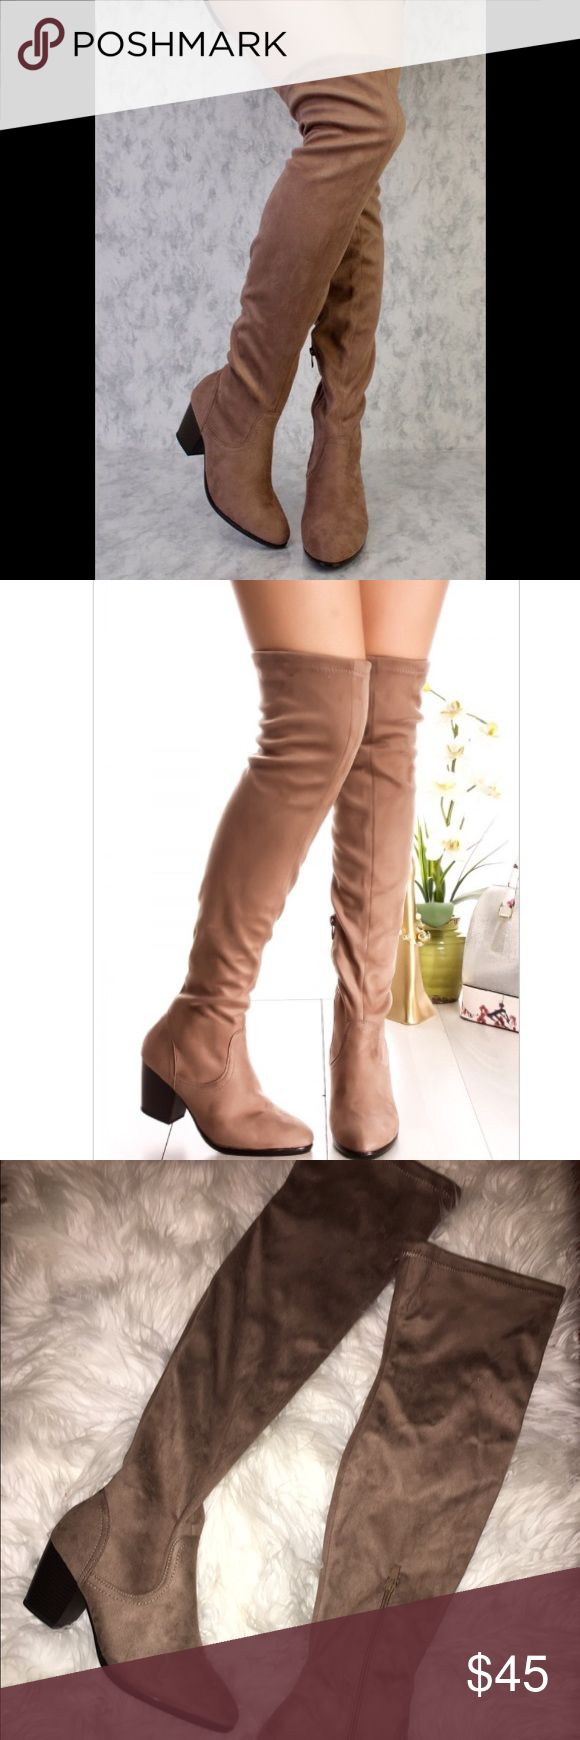 🎉SALE New Women's Taupe Suede Over The Knee Boots 🎉ITEM OF THE DAY!!! New Women's Suede Taupe Over The Knee High Boots   Taupe Suede  Heel (about 2 1/2 inches)  Above knee boots  Half Zipper on the side  Box is not included  Actual item is in 3-4th picture   ✔️Will ship between 1-3 days!!! ✔️Firm Price  ******Please READ before purchasing!!!*****  ANYTHING PURCHASED FROM NOVEMBER 17-22 WILL BE SHIPPED ON NOVEMBER 23. SORRY FOR THE INCONVENIENCE. :) Shoes Over the Knee Boots